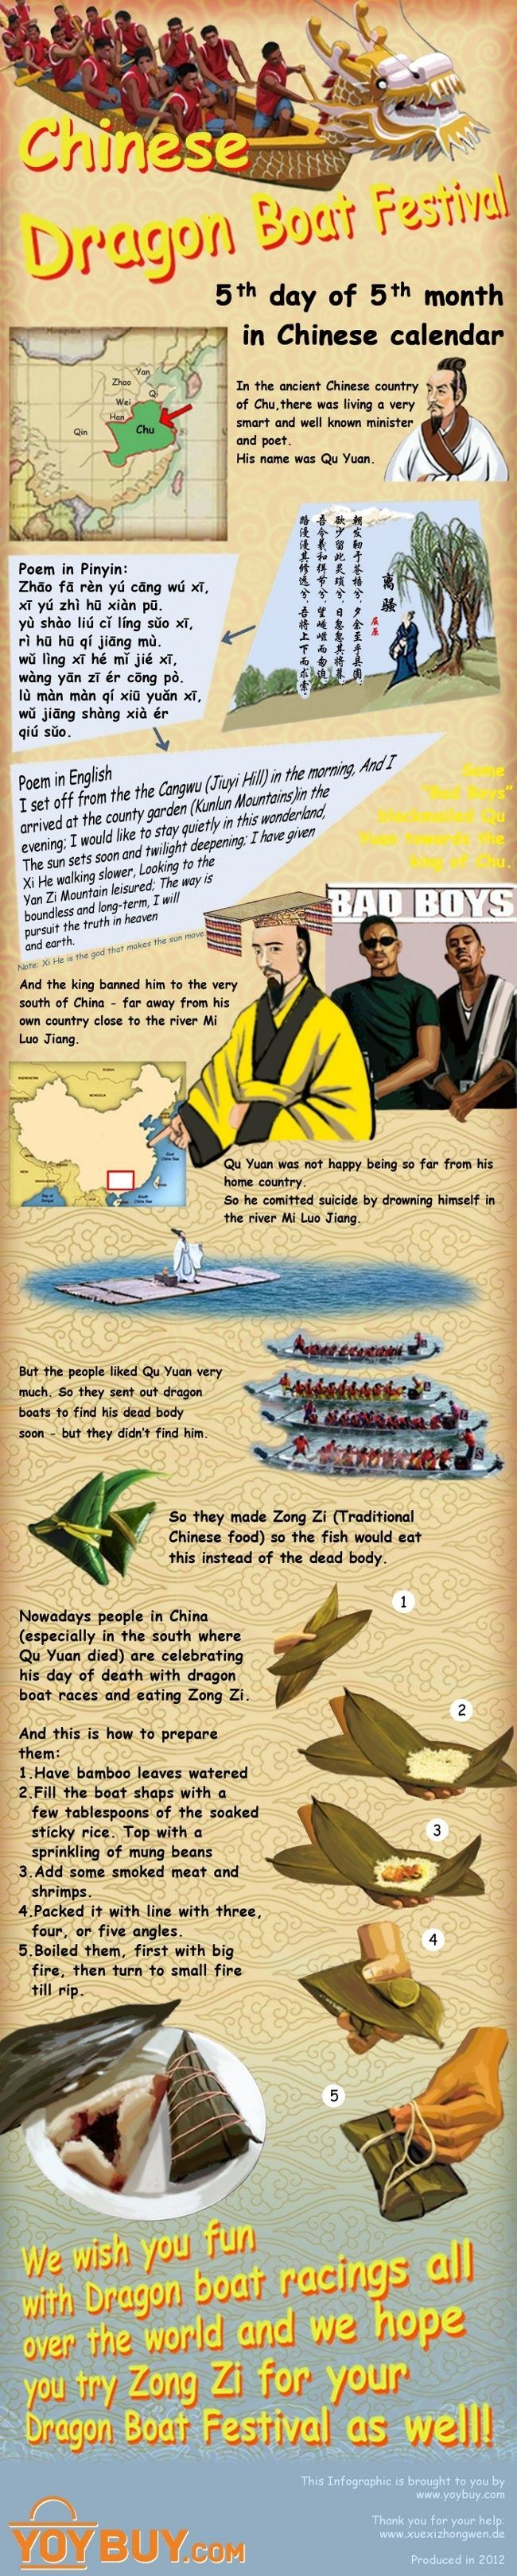 Chinese Dragon Boat Festival: Legend, Customs And Food (infographic)